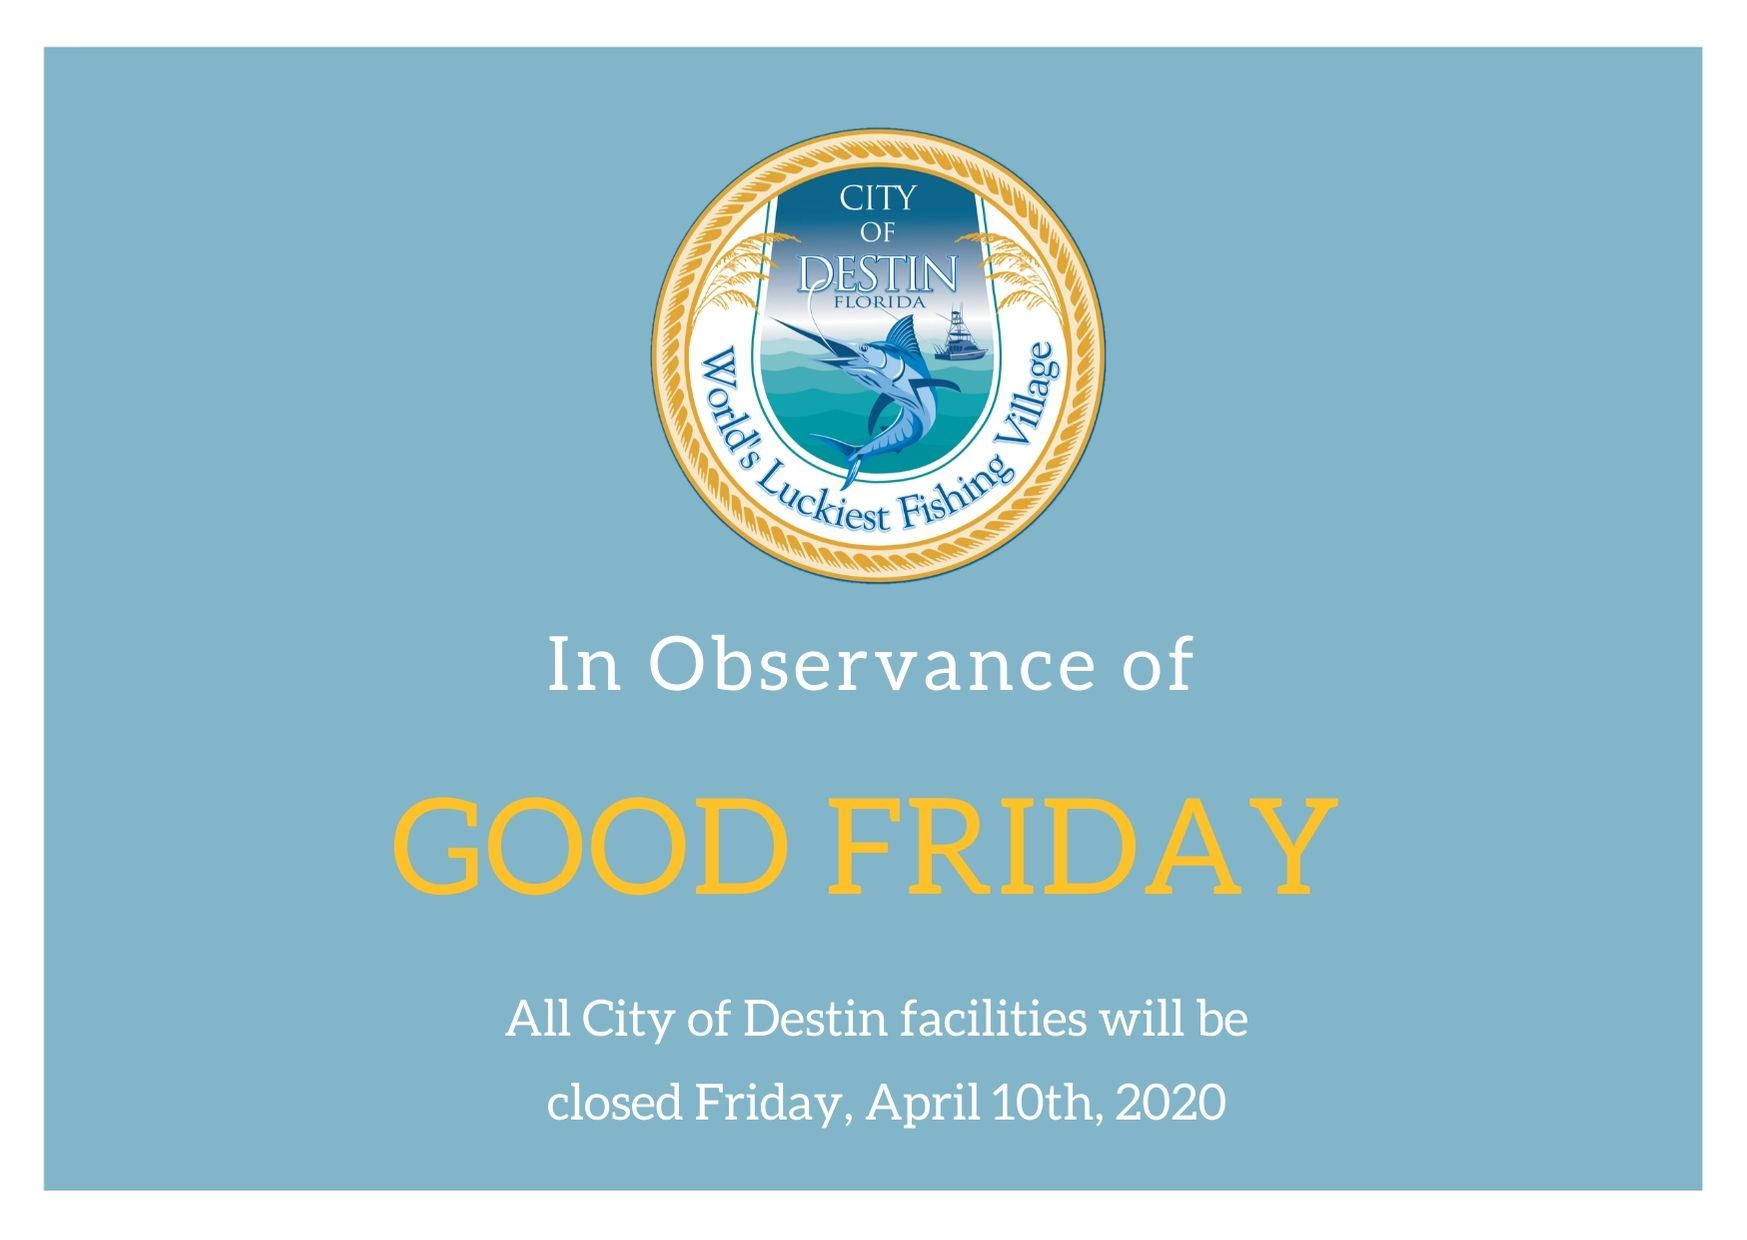 A picture of the City of Destin Logo with information about Good Friday and city facility closures.